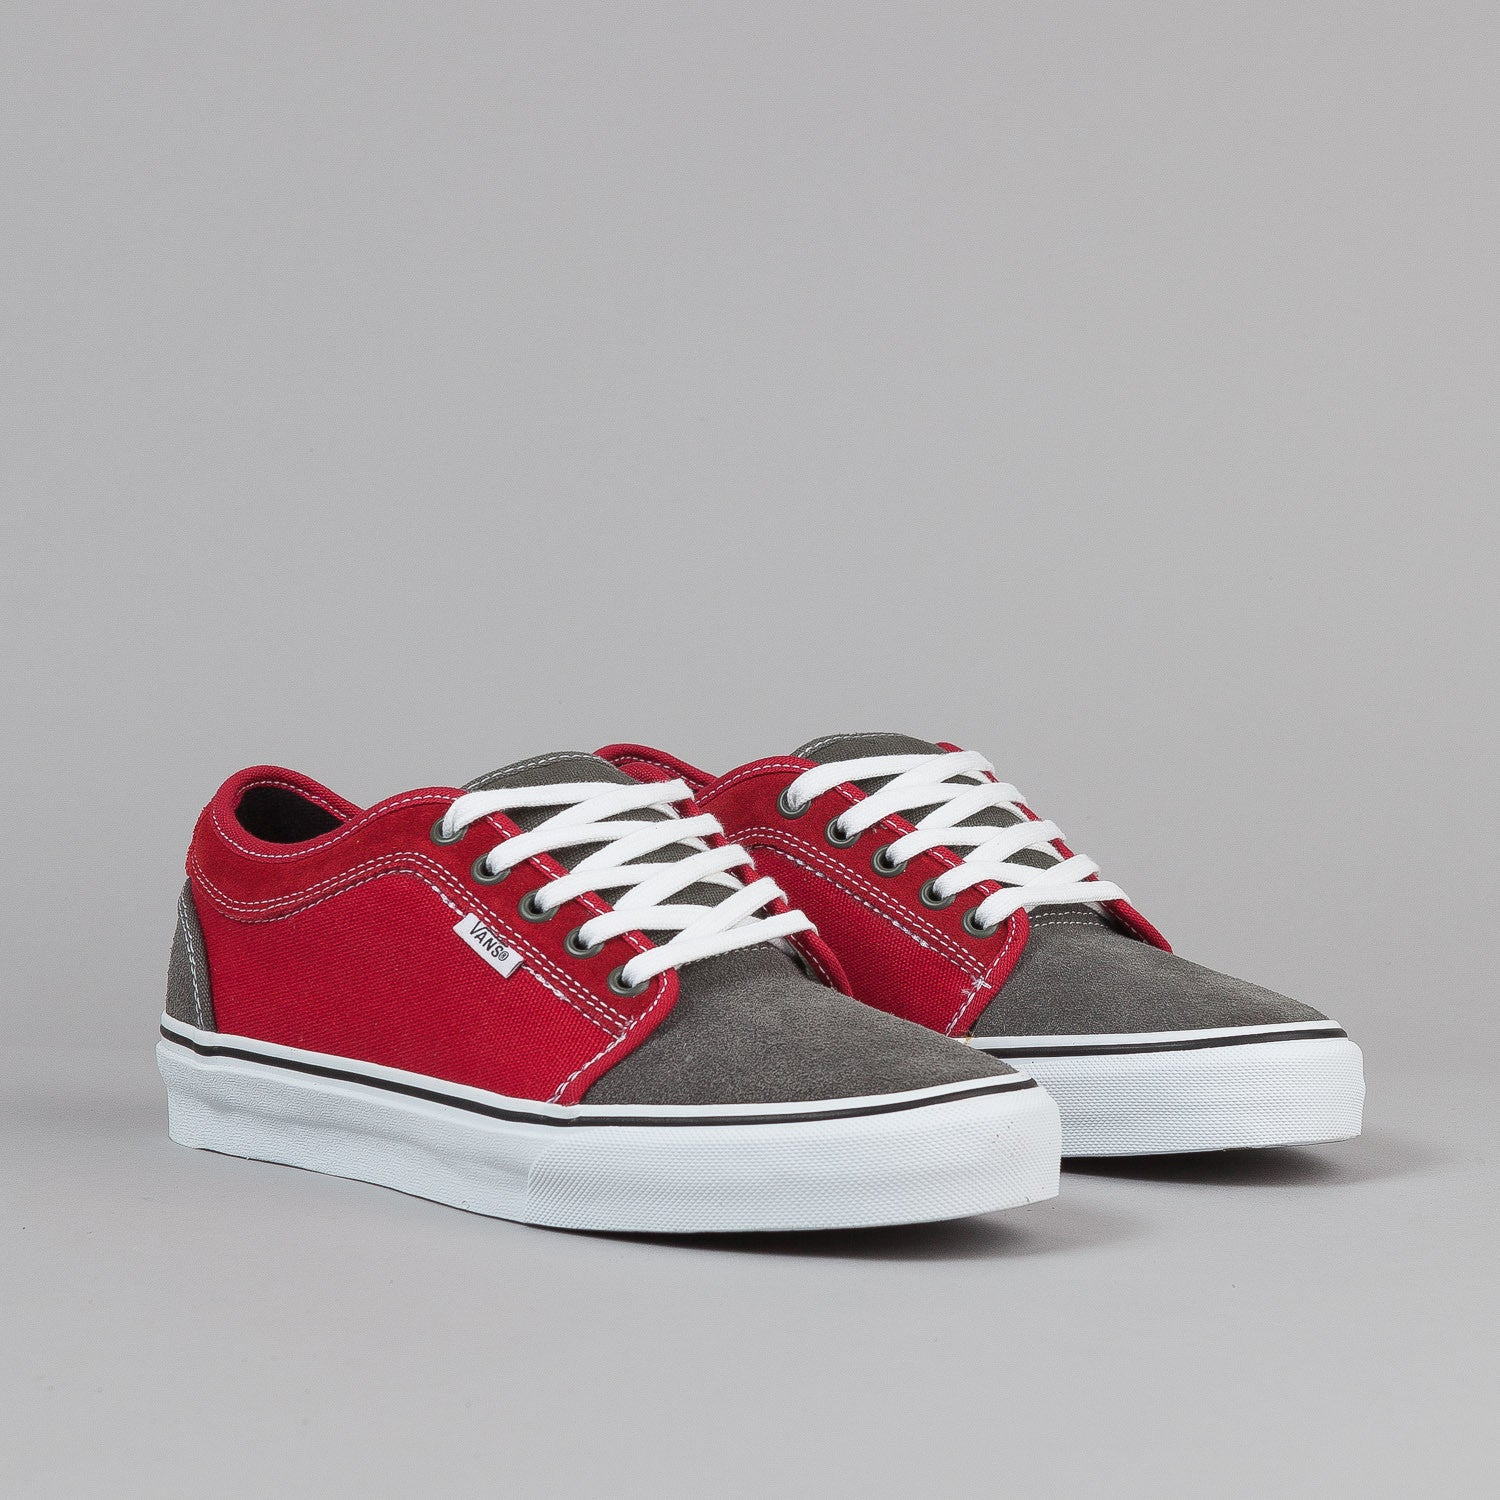 Vans Chukka Low Shoes - Massimo Cavedoni / Grey / Red